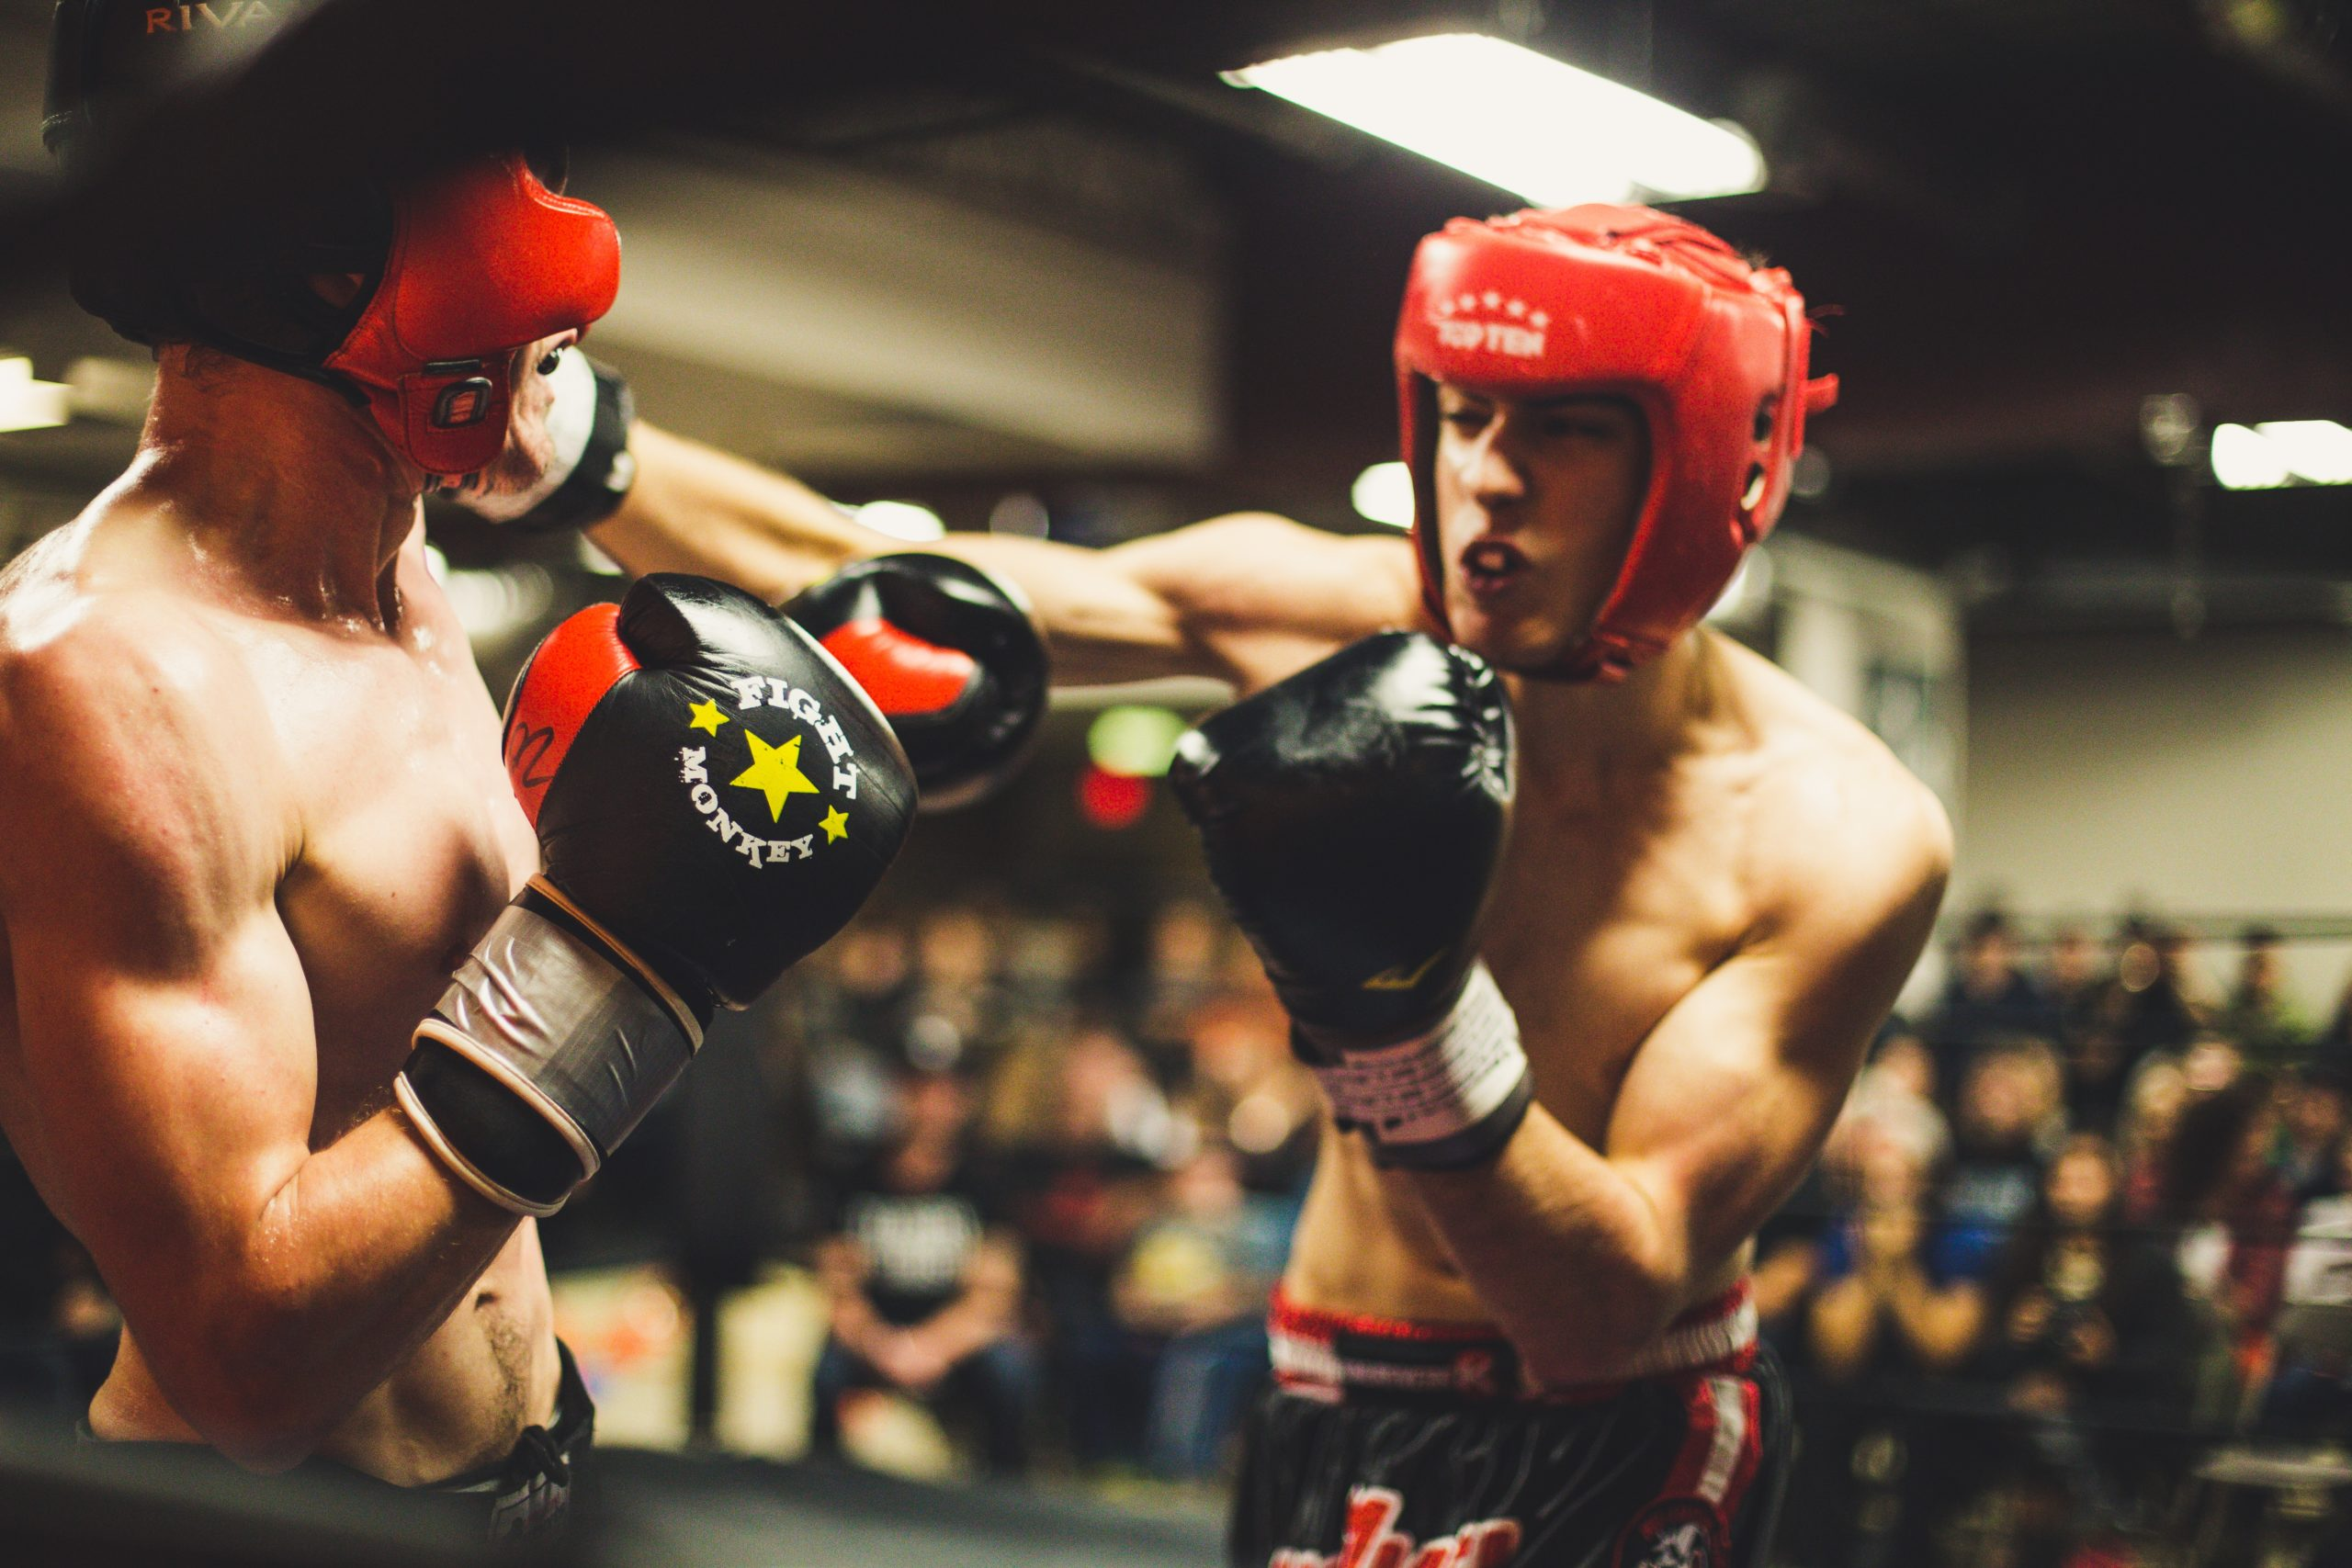 MMA Or Boxing? Which One Is Better For You?